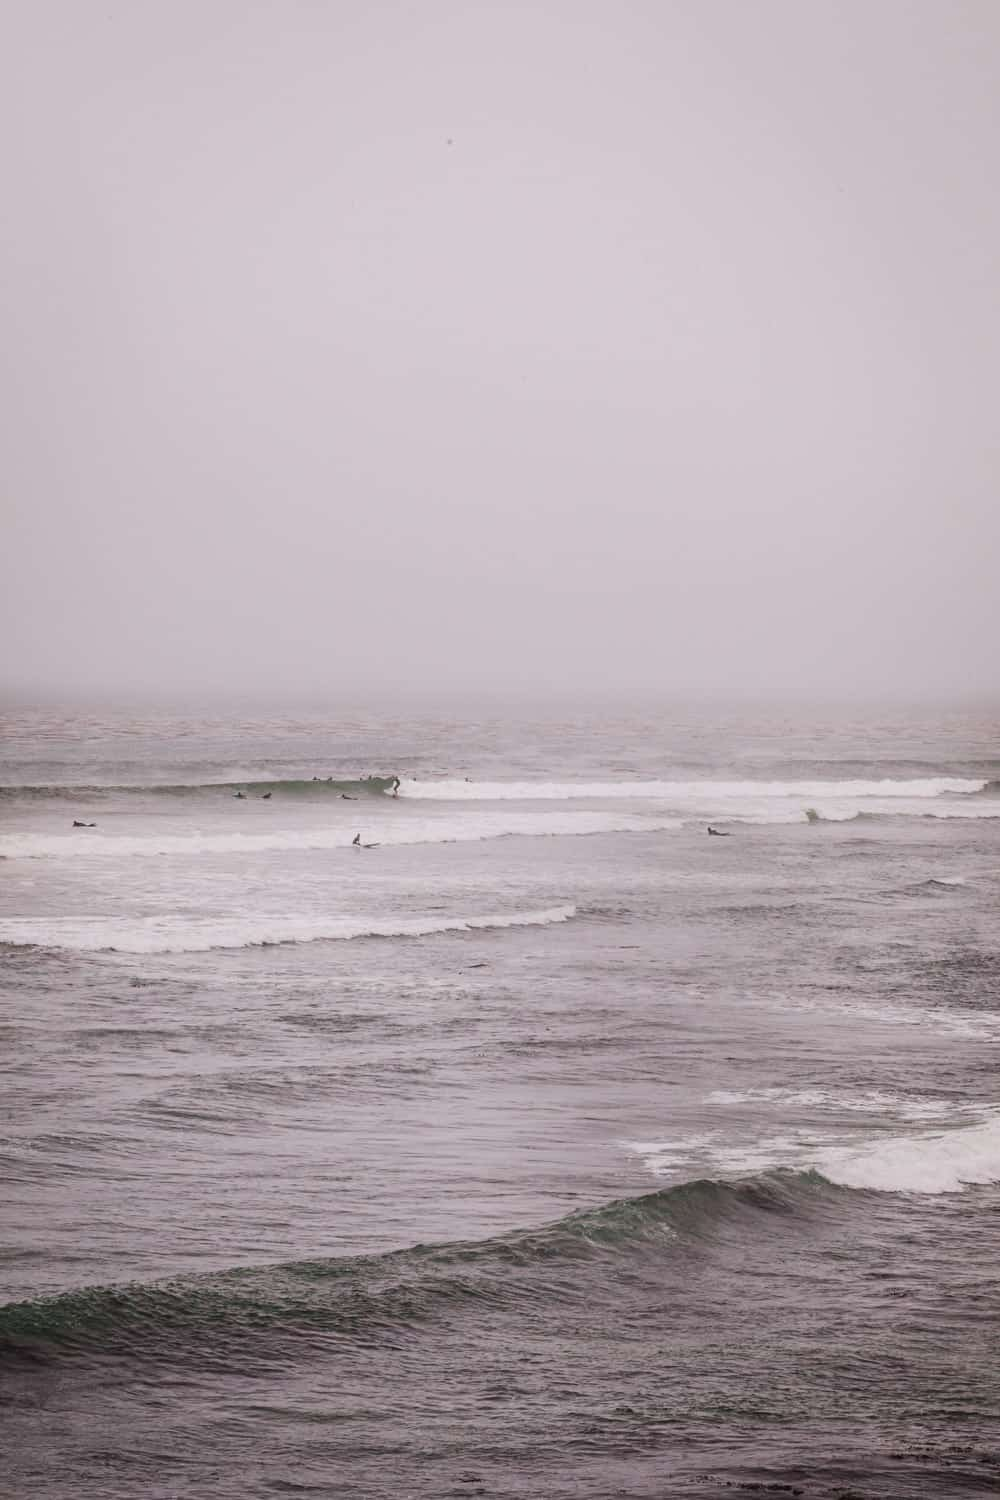 A view of surfers out on the line up in Pleasure Point on a foggy day